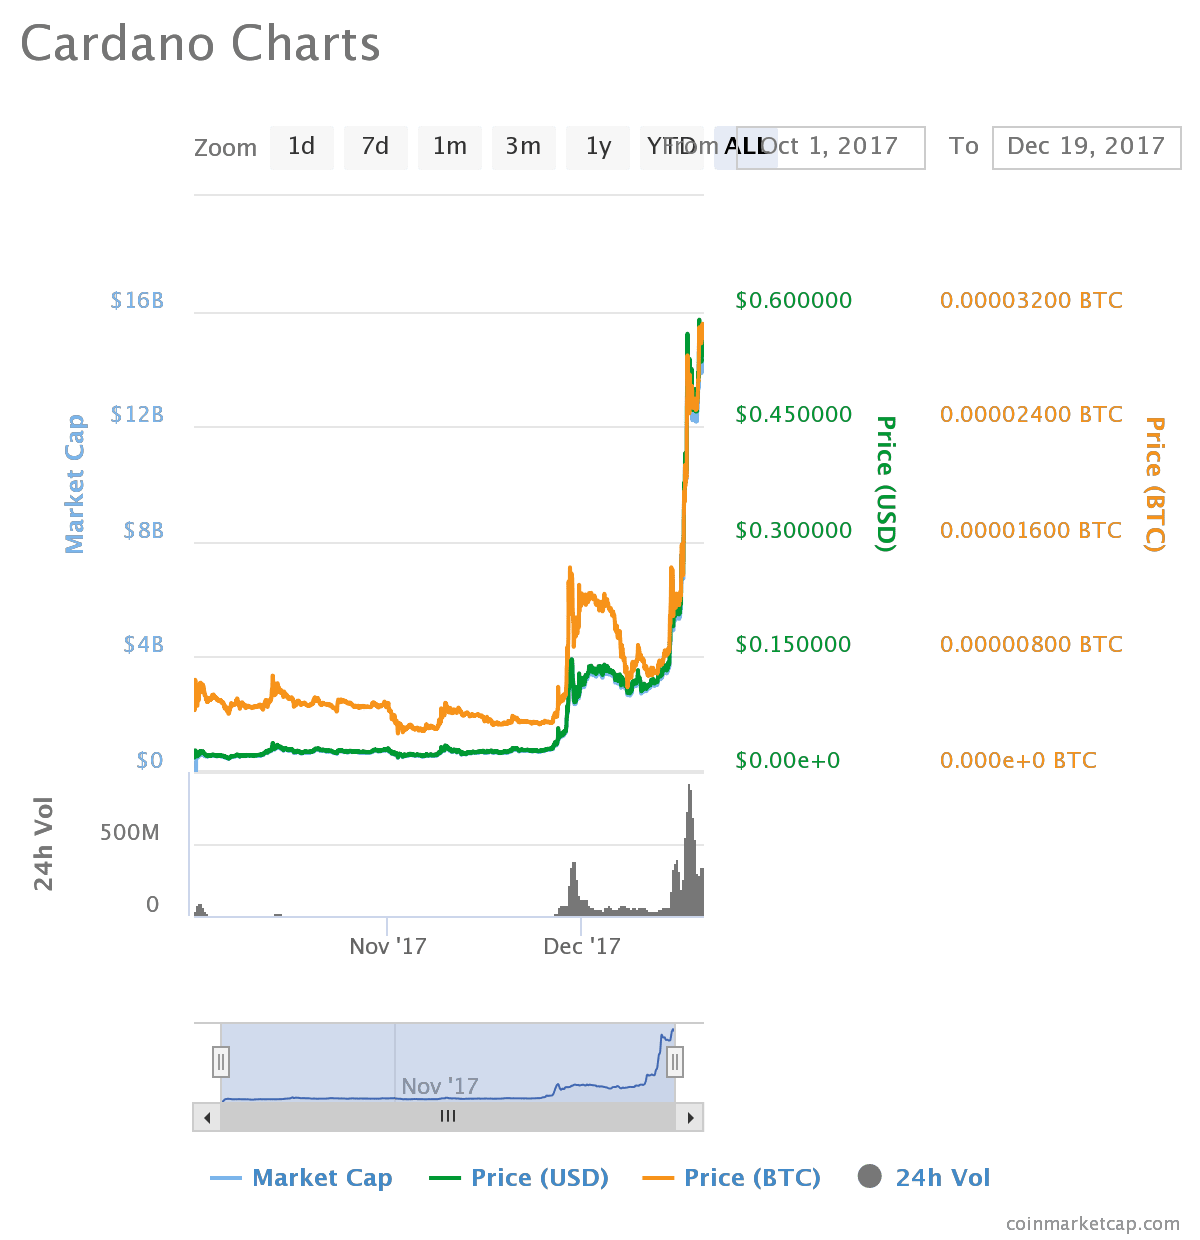 chart 7 - Massive Surge on Cardano (ADA) Price Up over 200% in a Week